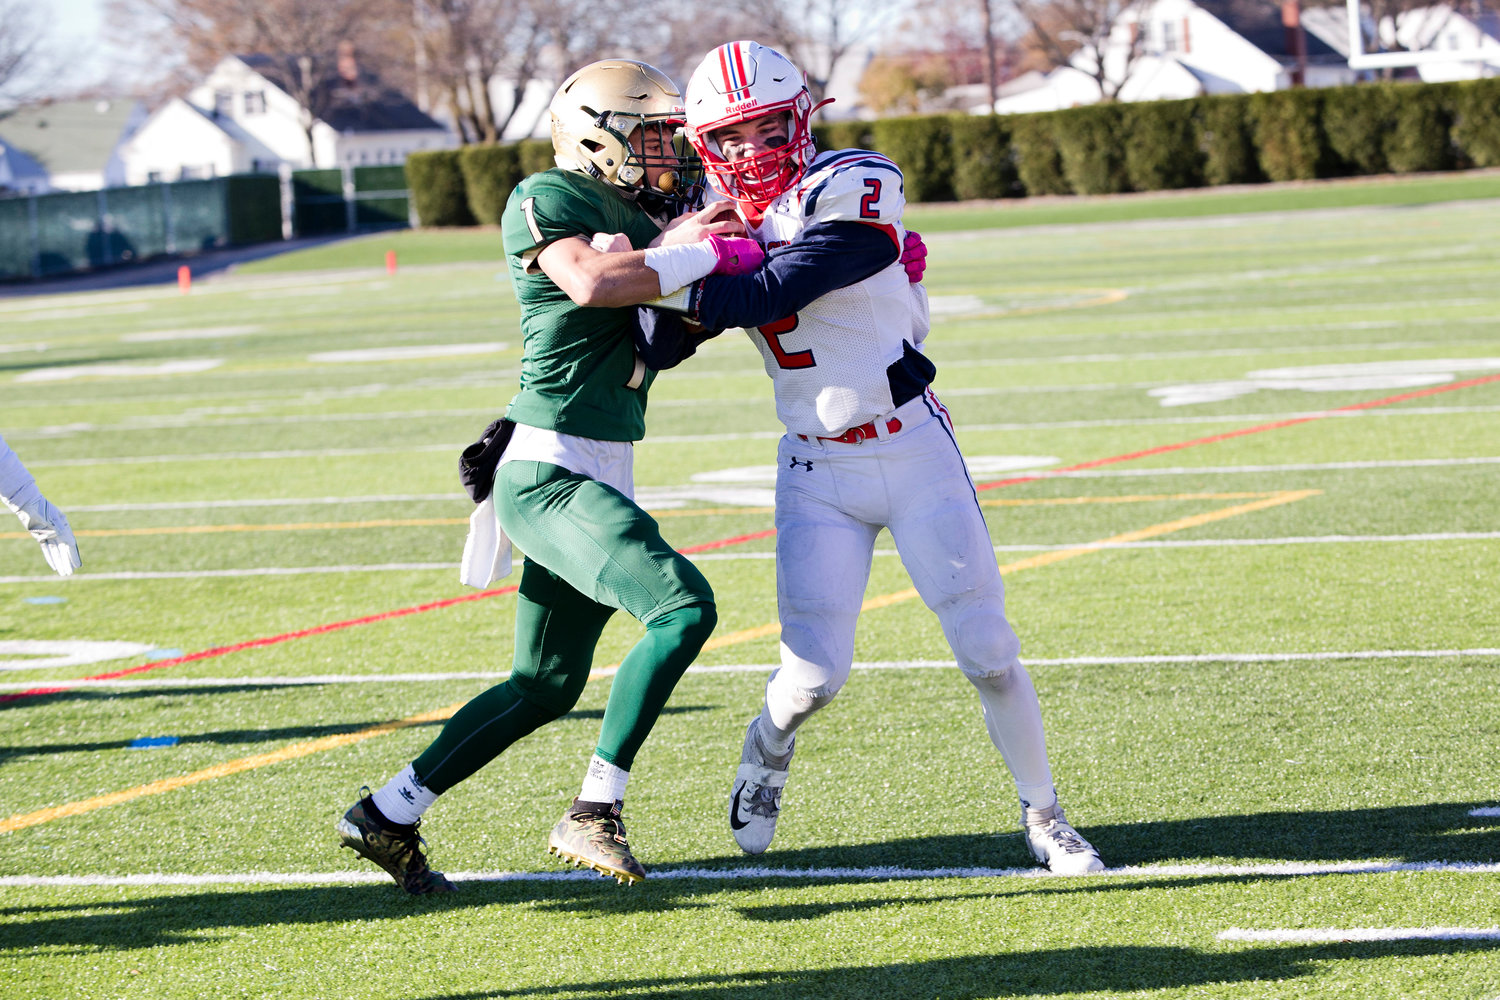 Benny Hurd battles his way past a Hendricken defender.